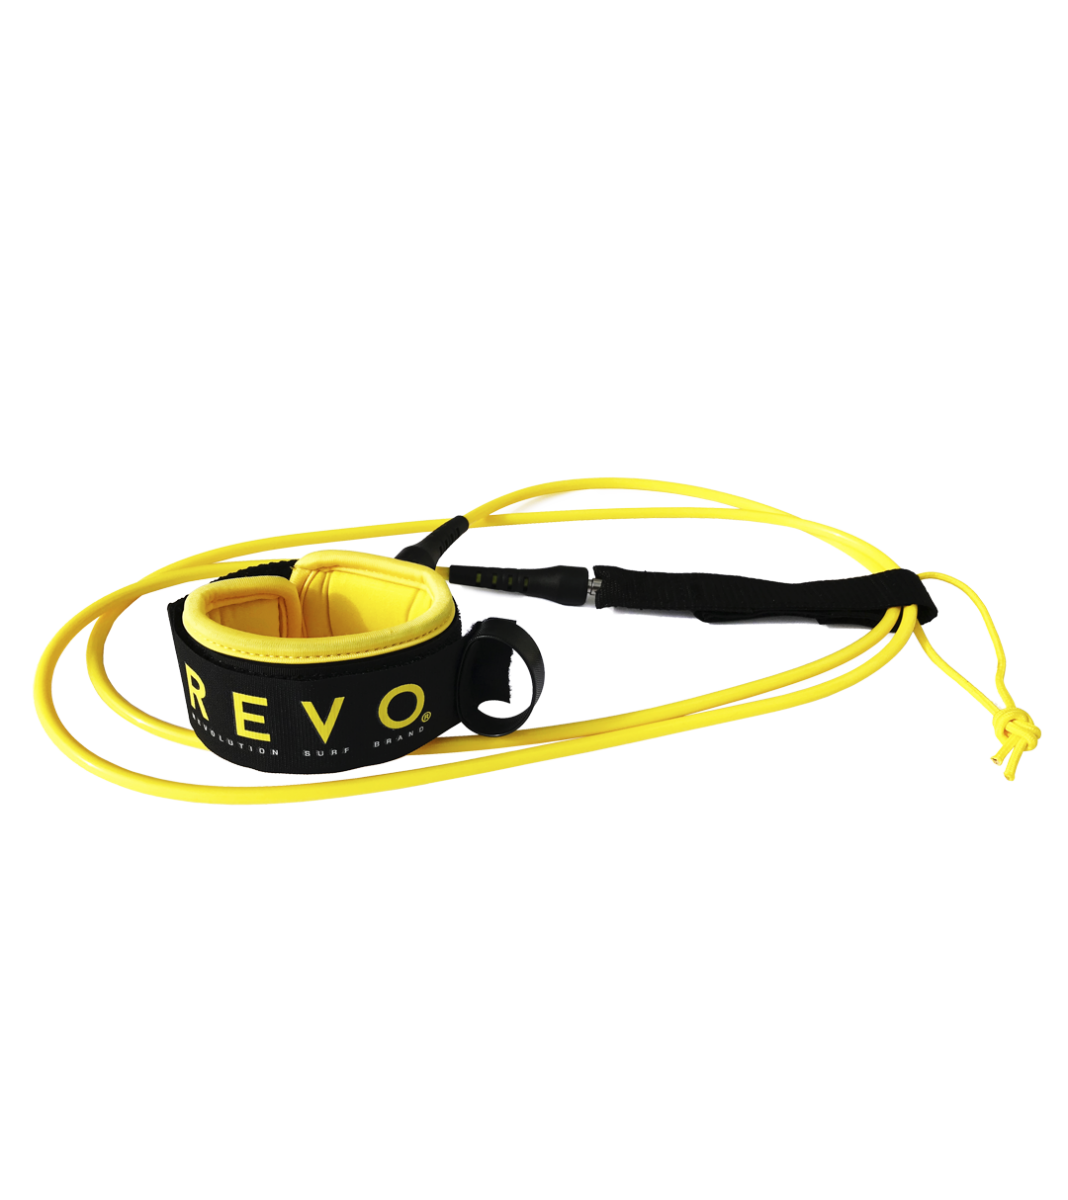 REVO PANTHER SURF COMP - 6